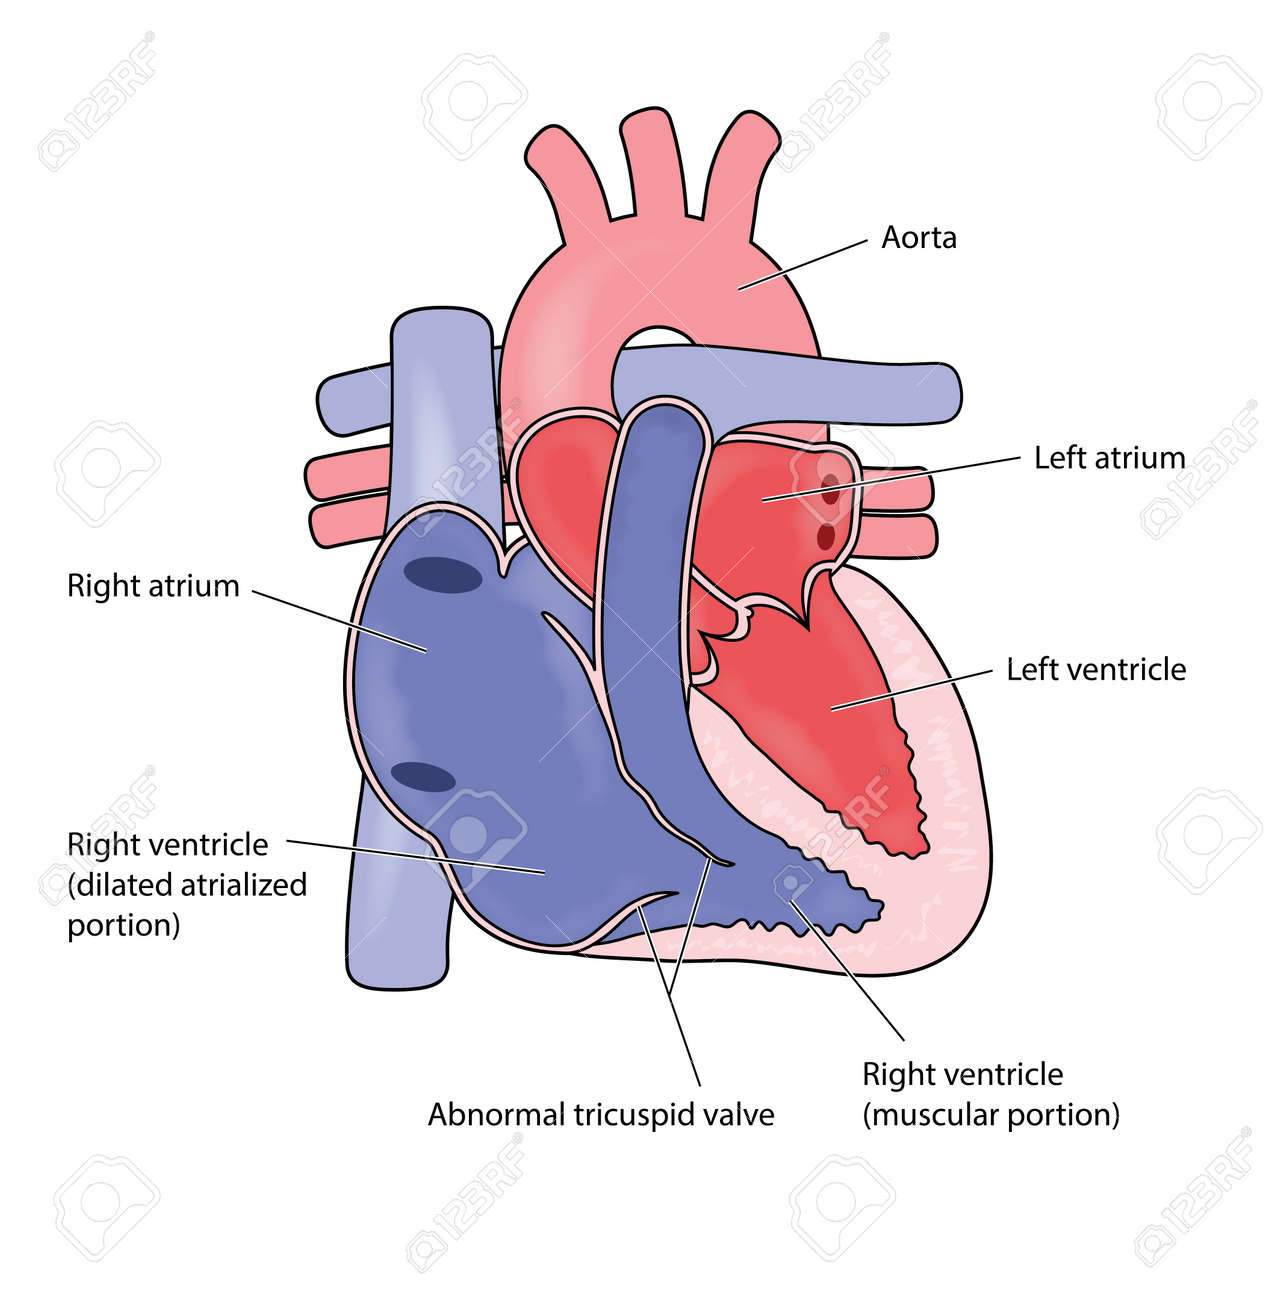 Heart Showing Ebsteins Heart Anomaly With Enlarged Right Atrium